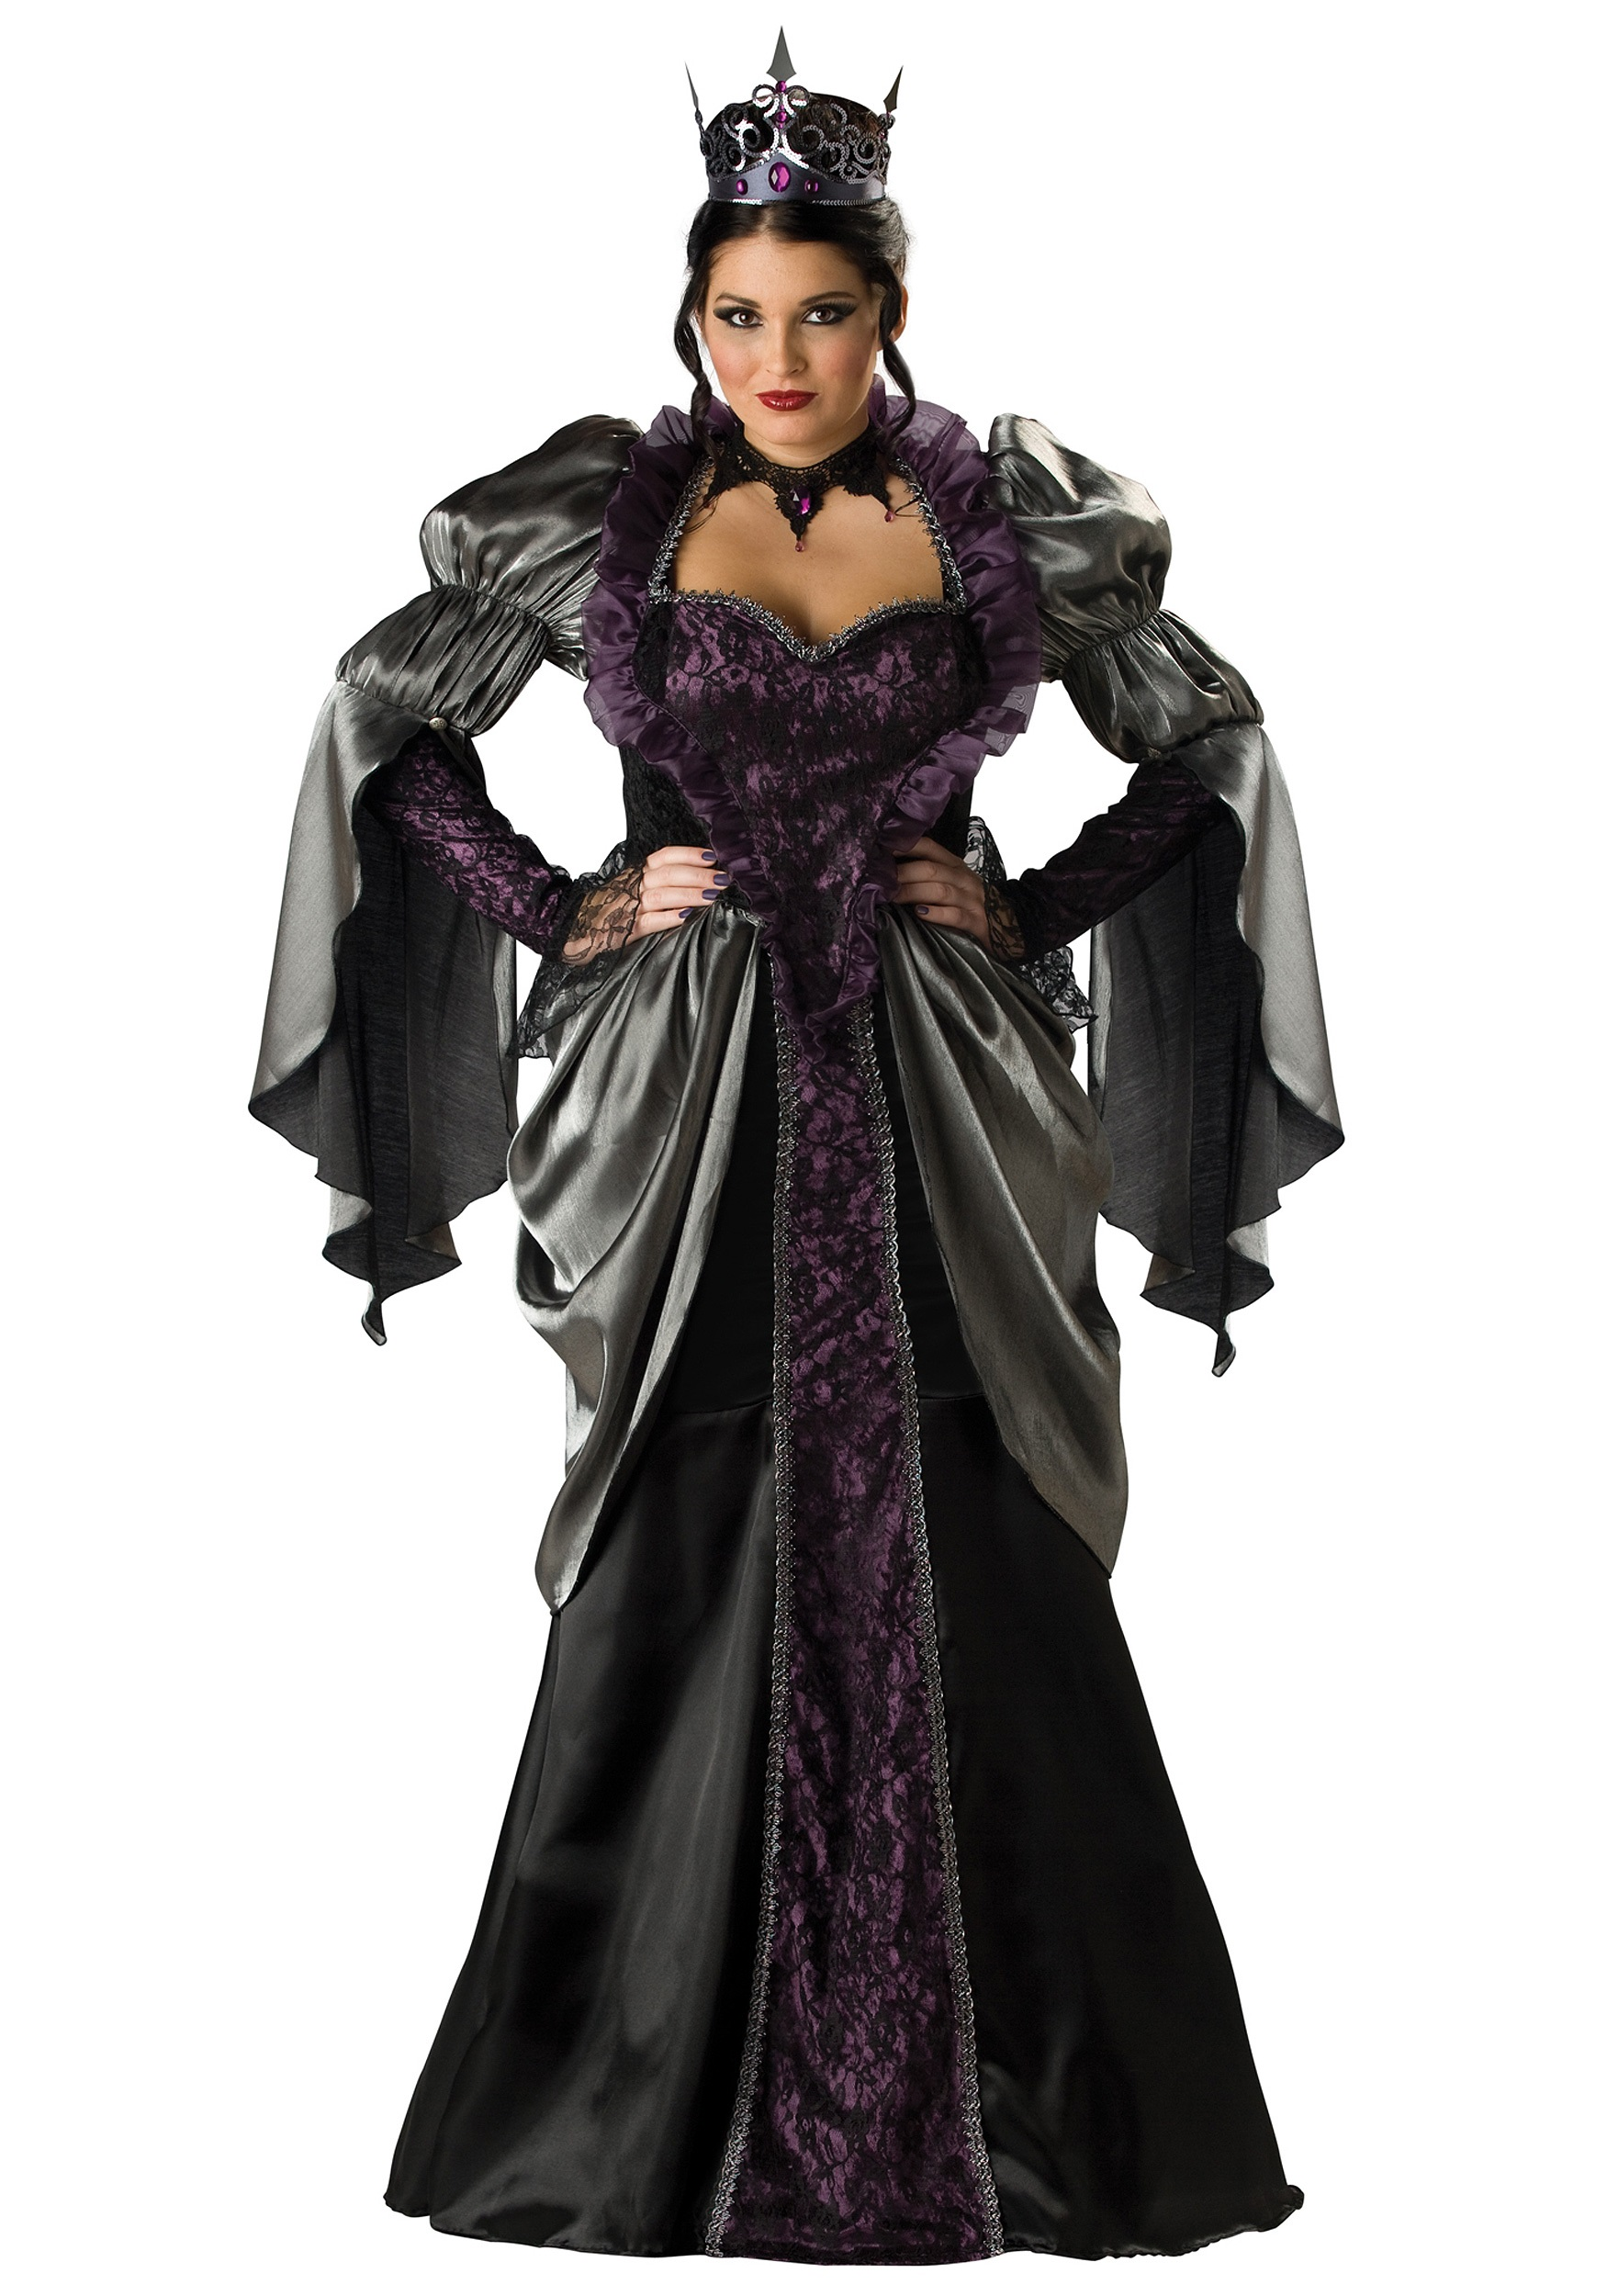 8520817cbe204 Plus Size Wicked Queen Costume